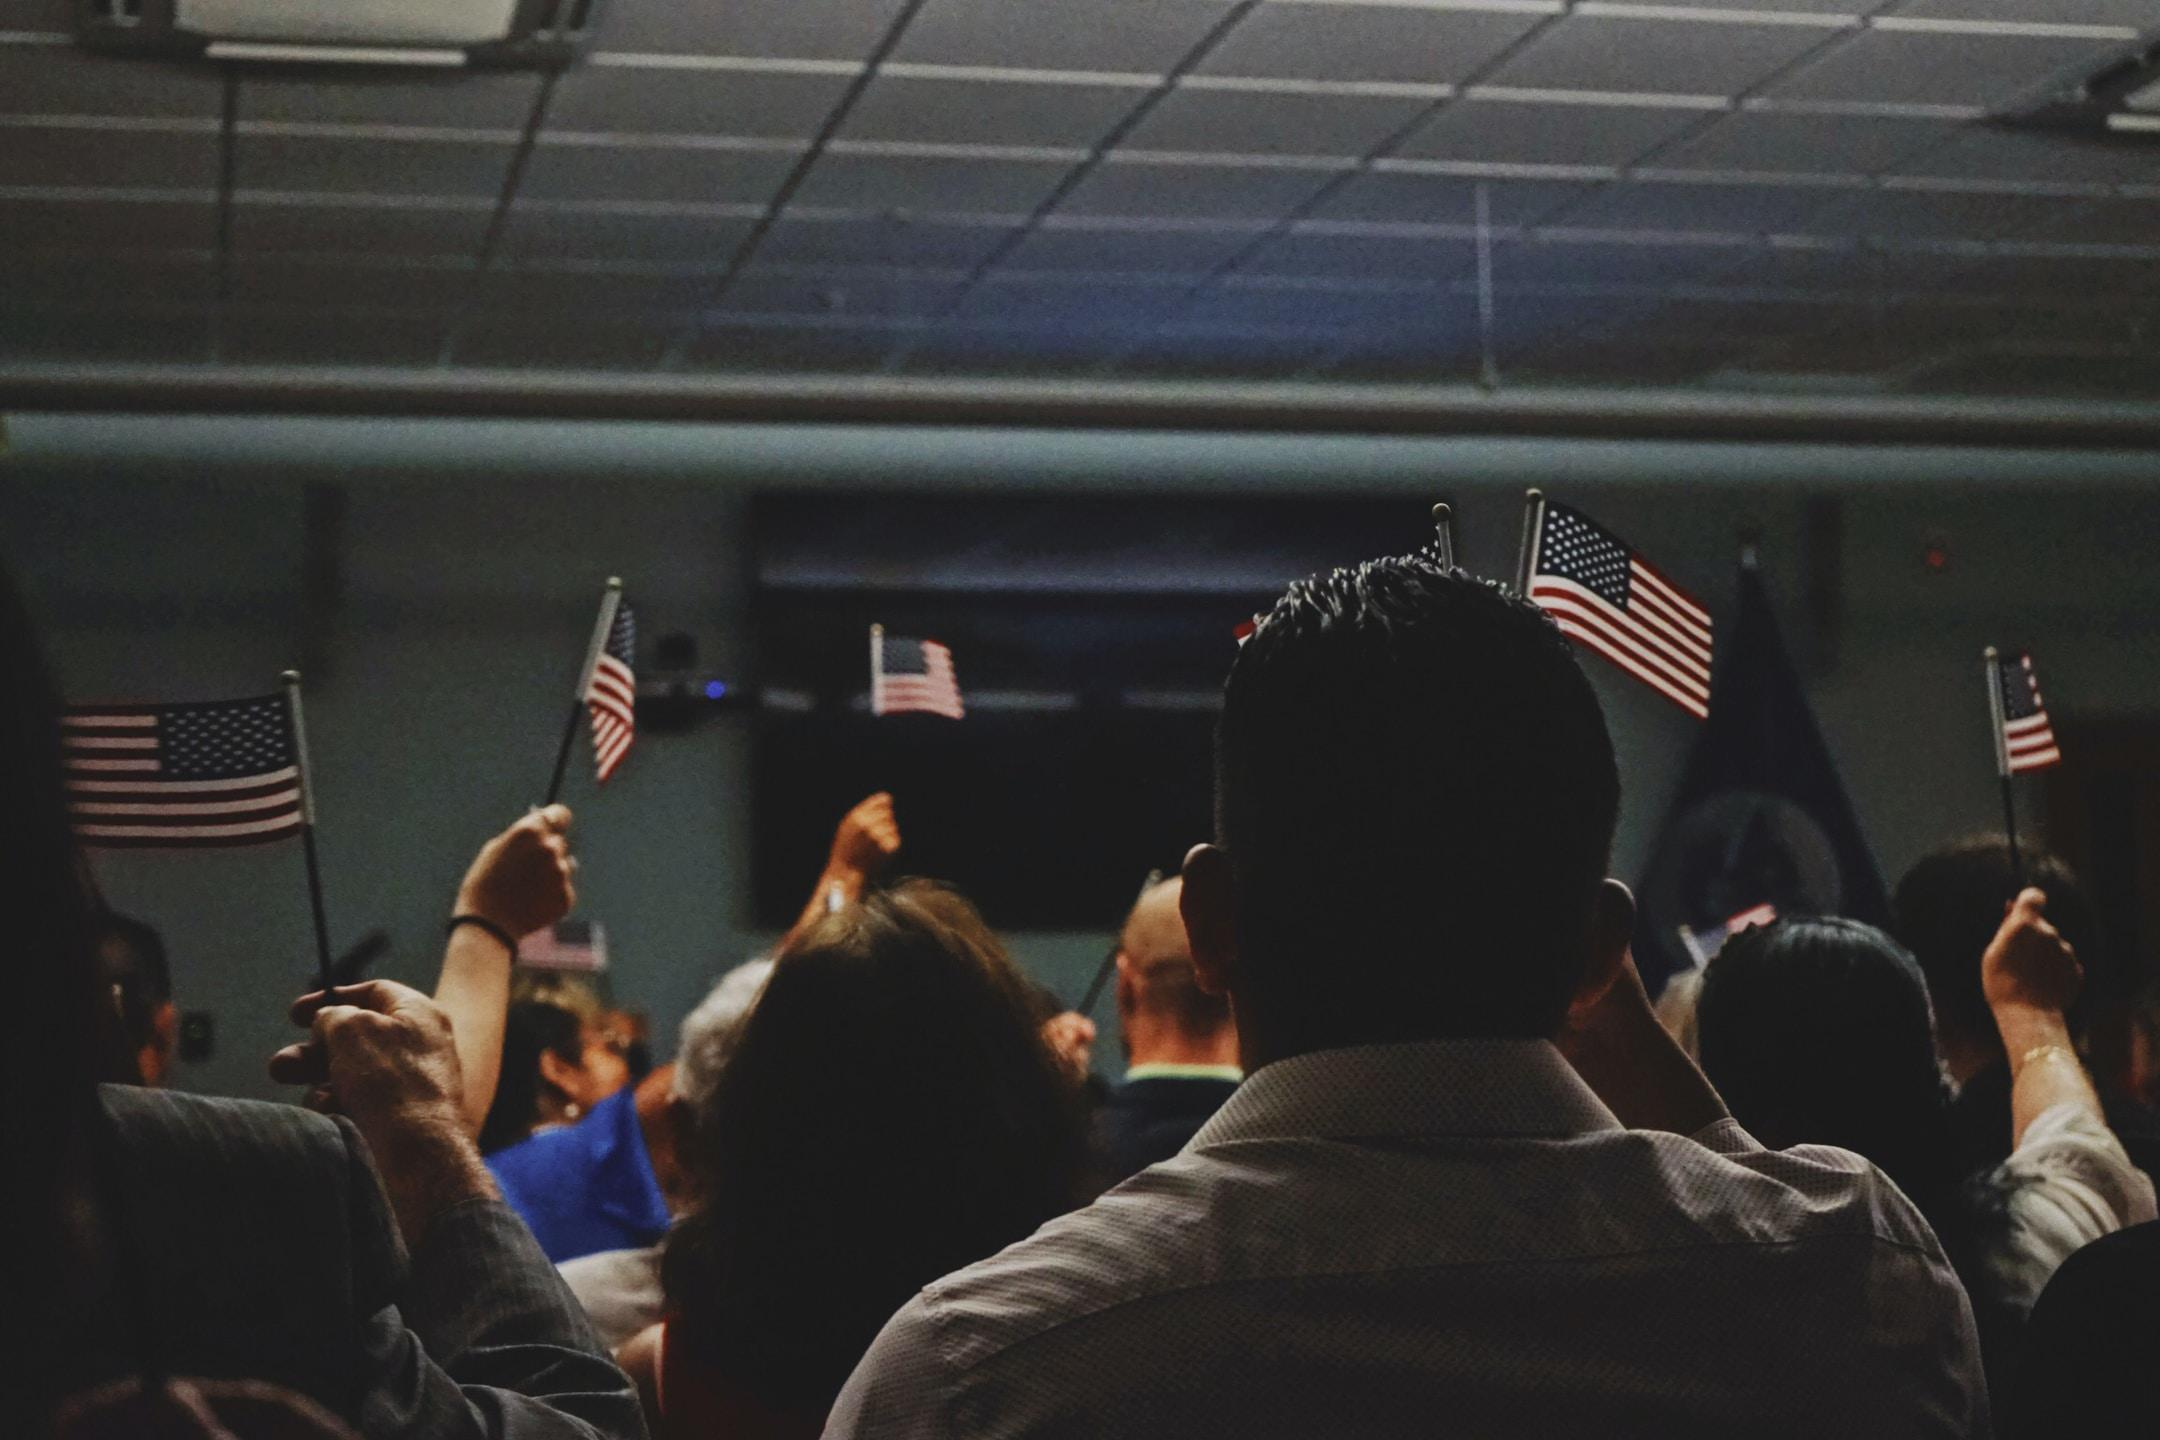 Naturalization legal advice in Southern Florida.